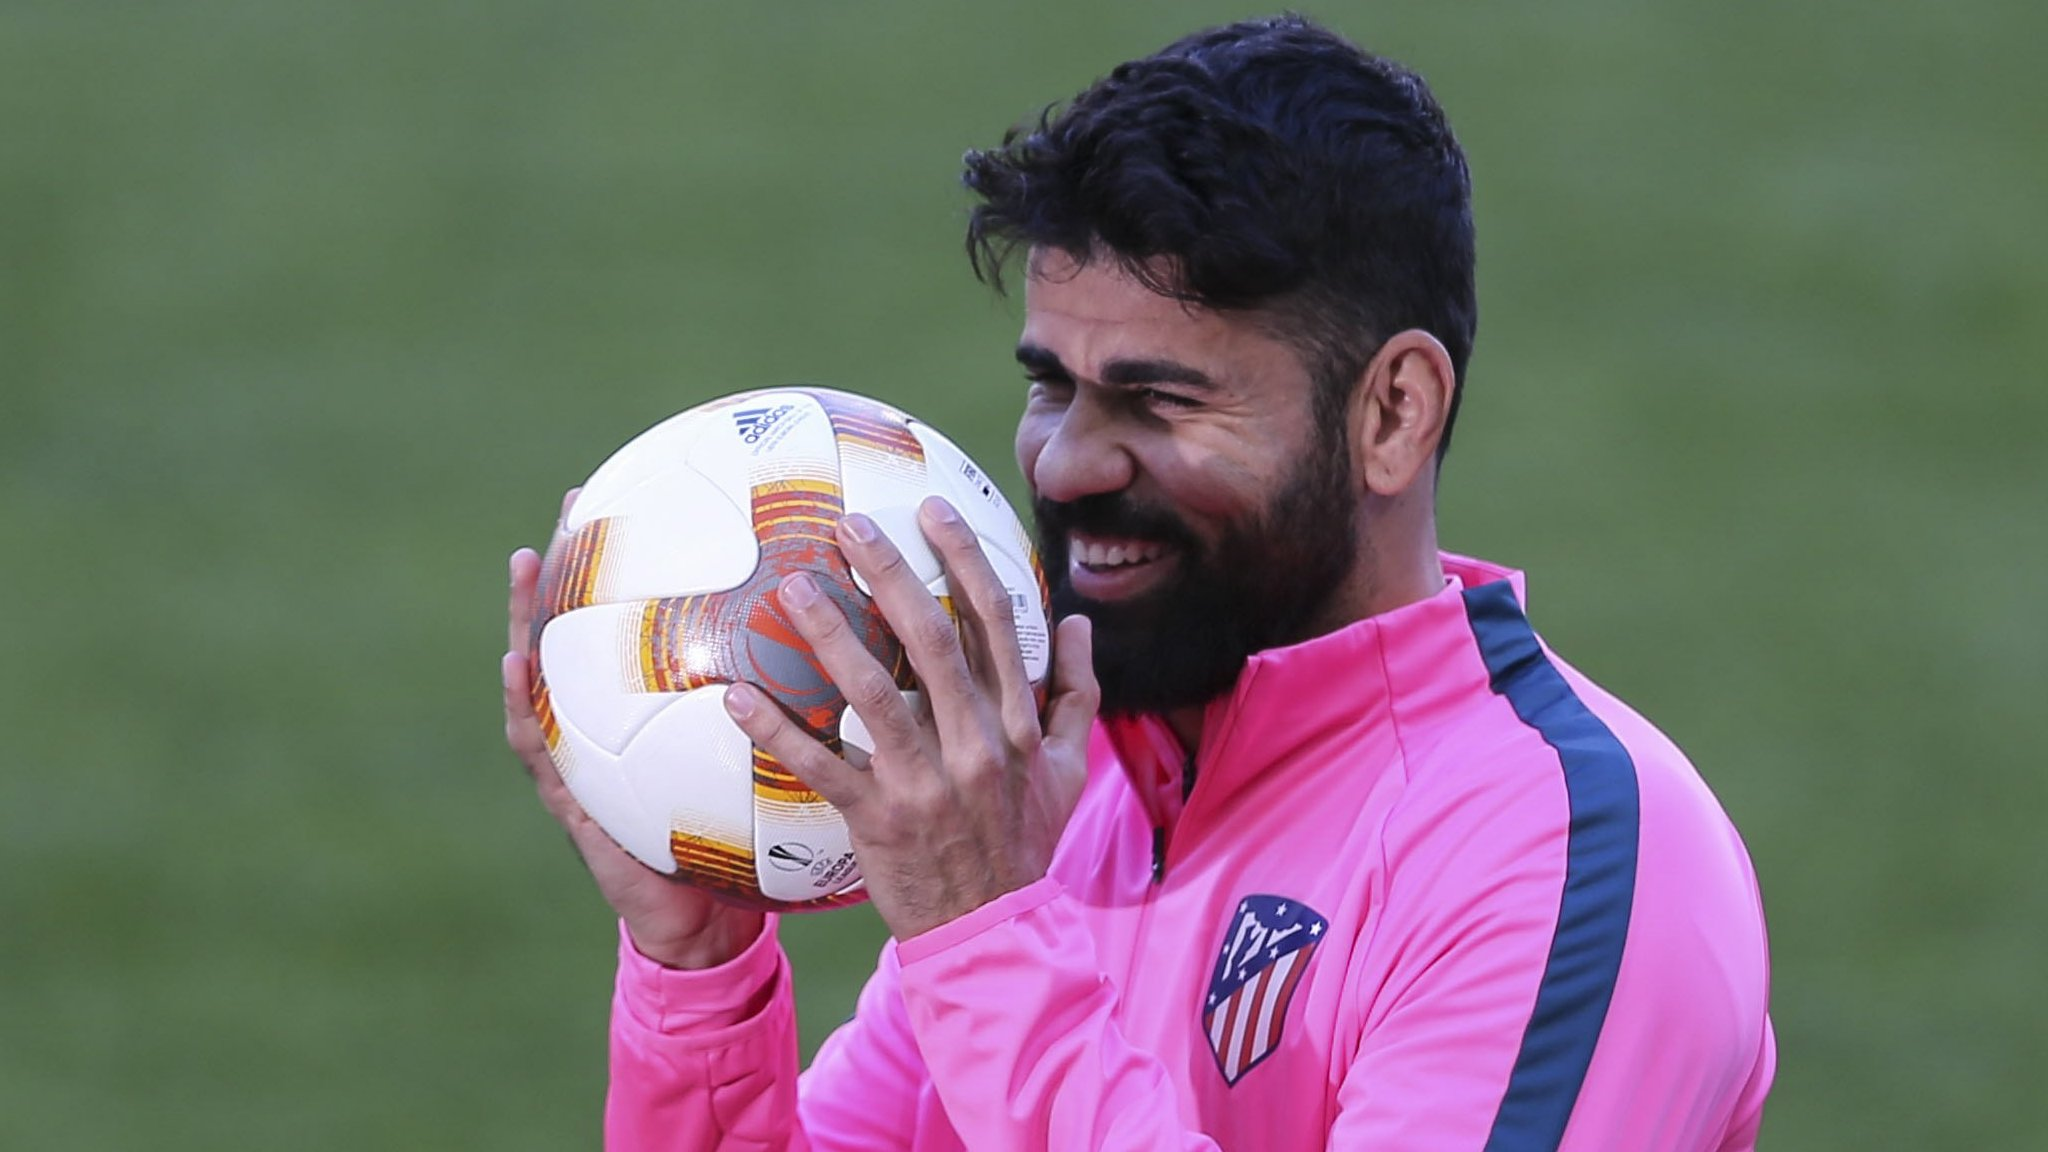 Costa named in Atletico squad for Arsenal tie